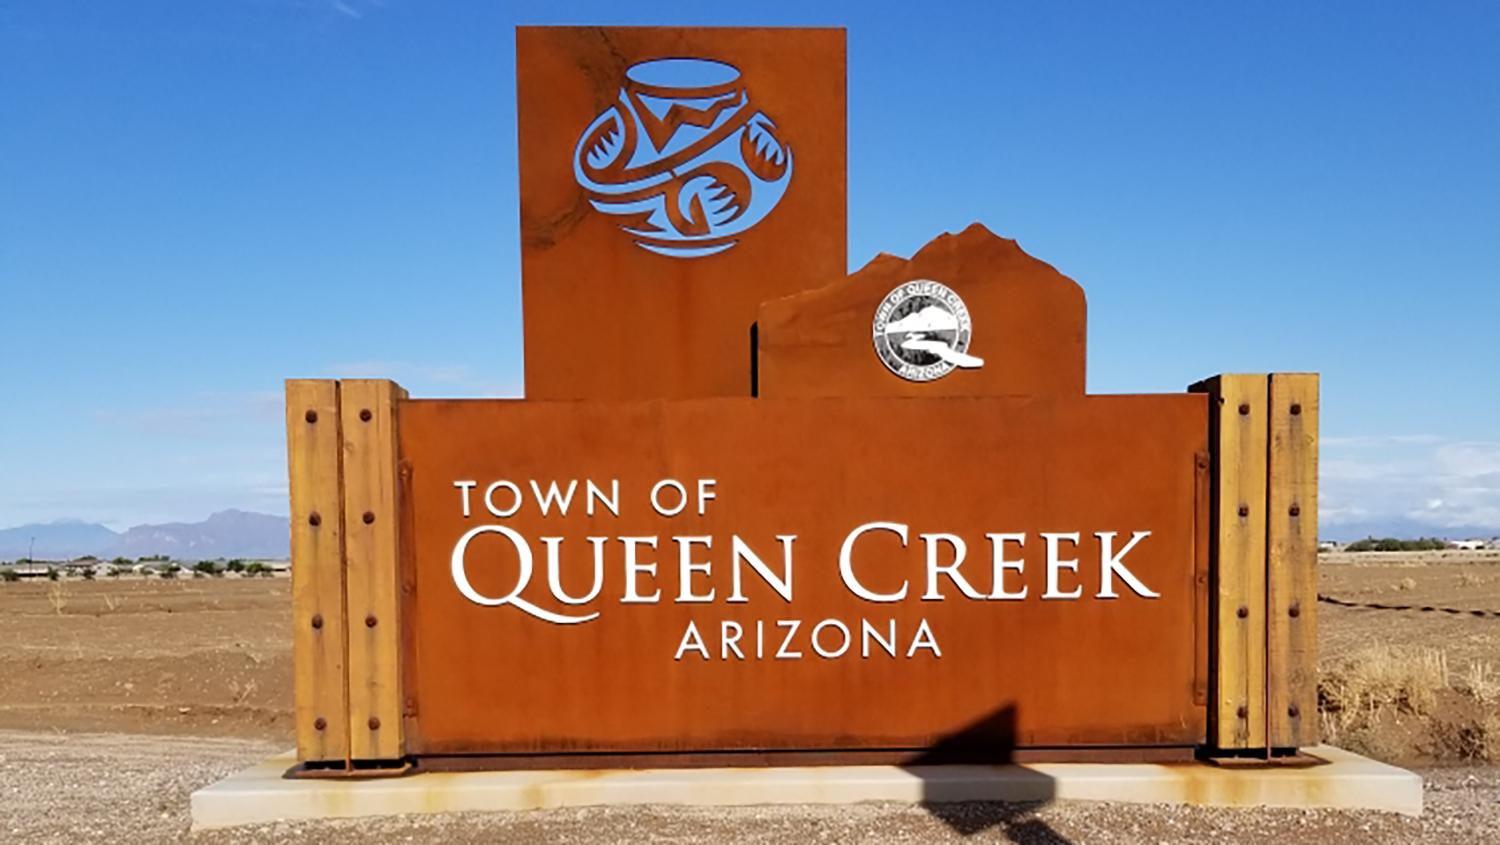 sign for the town of Queen Creek